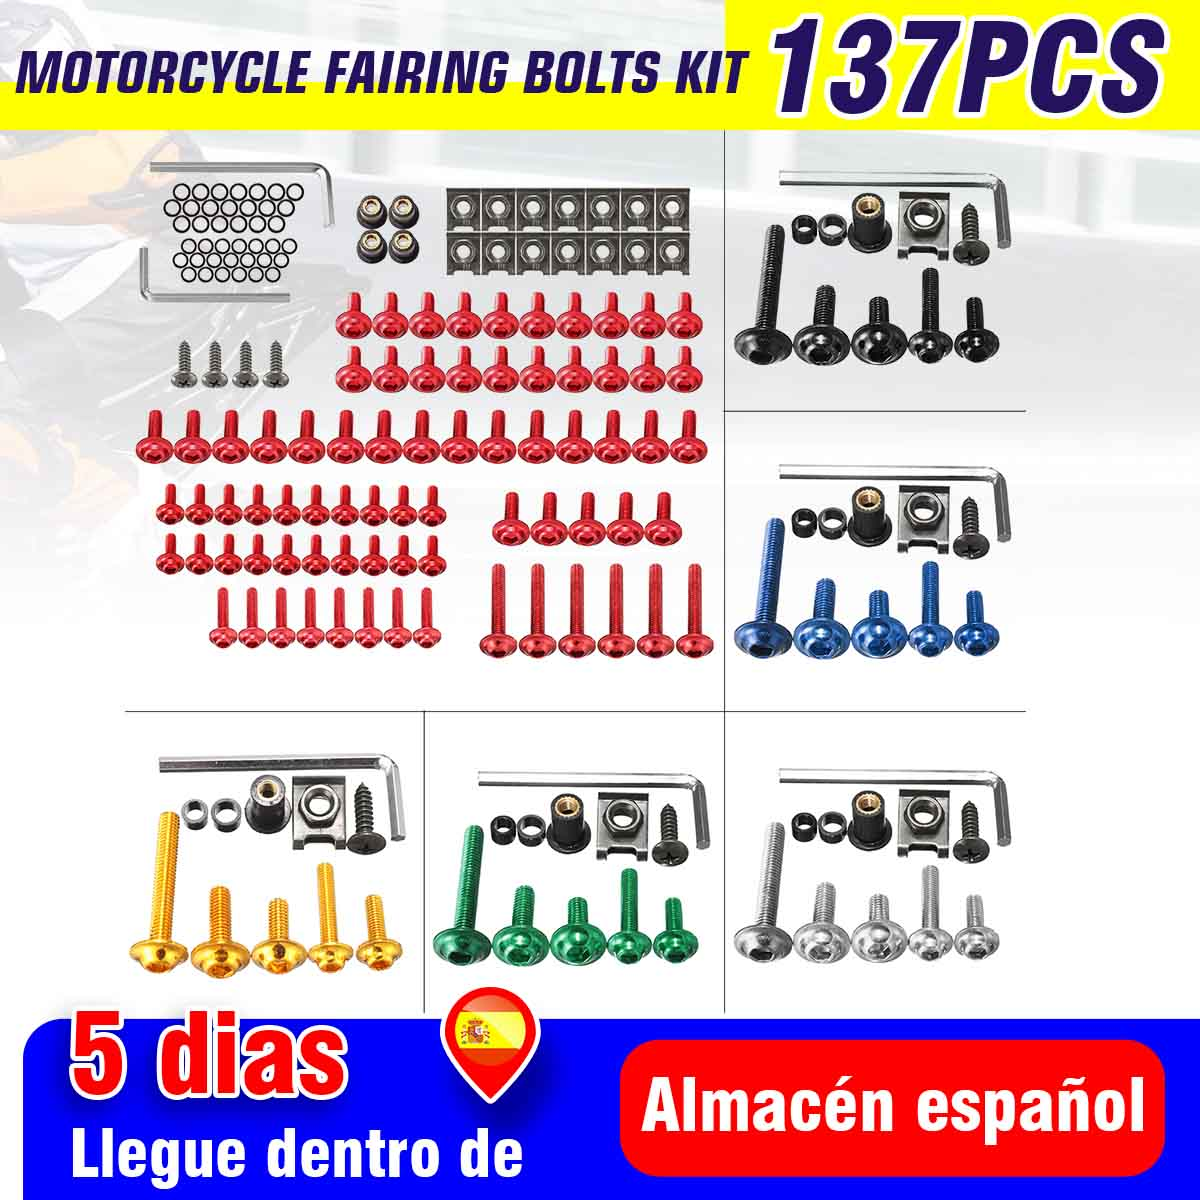 137pcs Universal Motorcycle Fairing Body Bolts Kit Fastener Clips Screw Nuts For Kawasaki /Suzuki /Honda /Yamaha /KTM /BMW